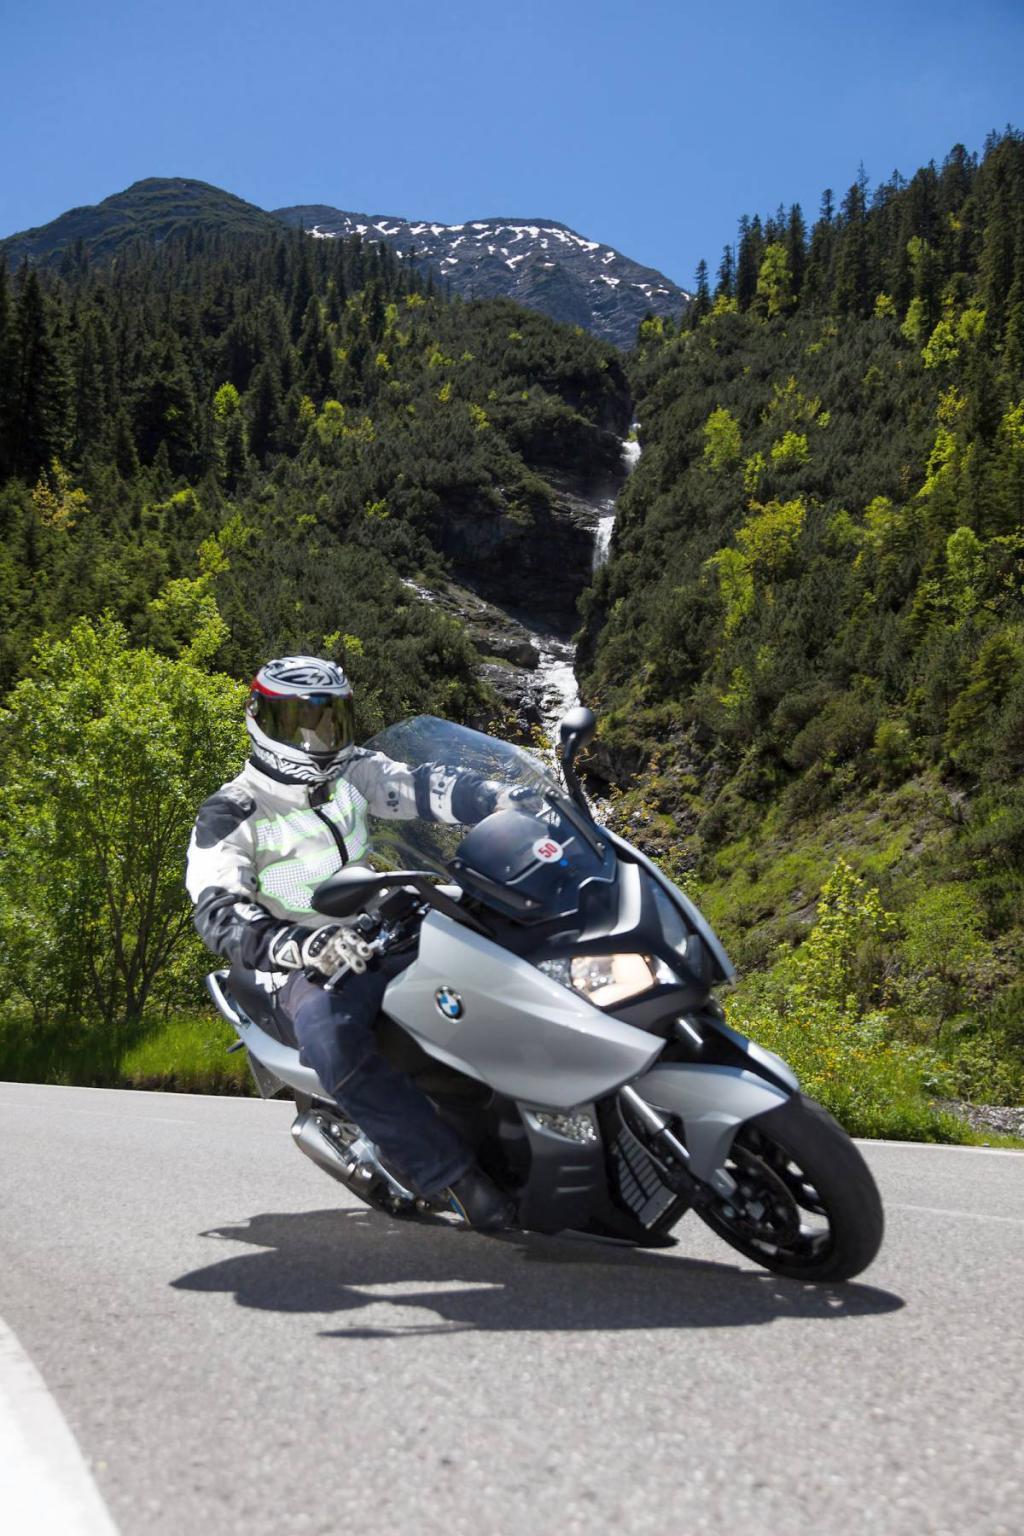 http://www.motorrad-bilder.at/slideshows/291/009686/bmw-c600sport-ischgl-2013-19.jpg